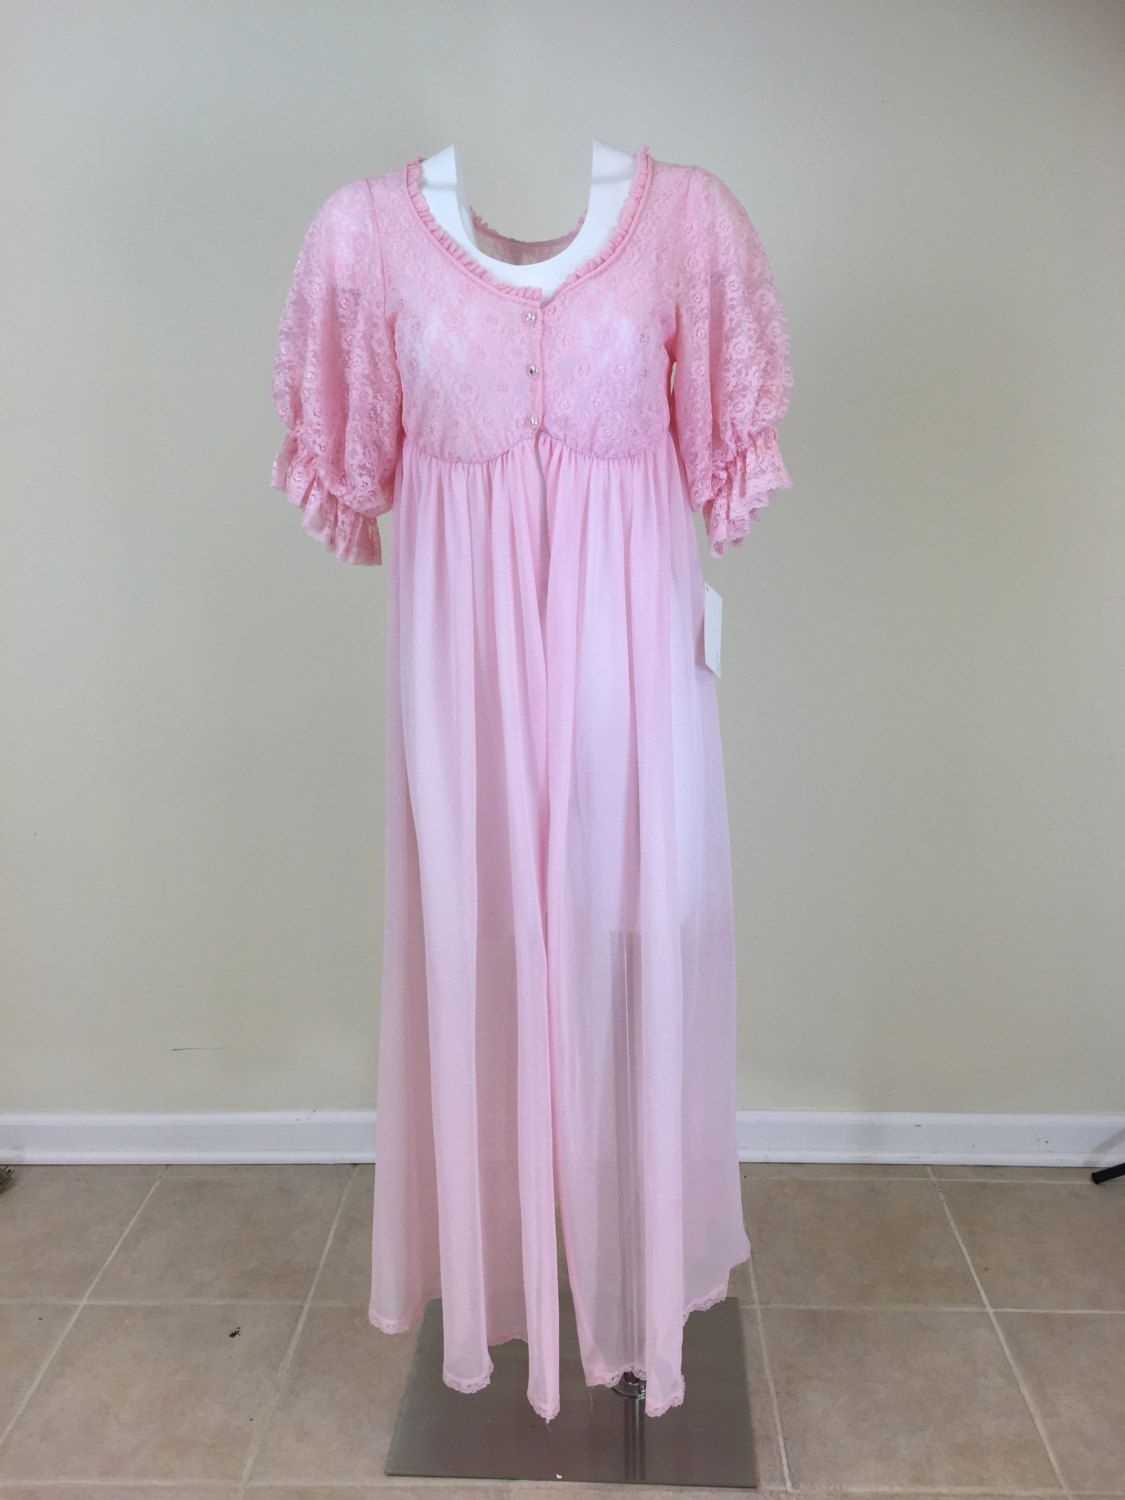 25c0f80500 Sexy Vintage Retro Chiffon and Lace Baby Pink 1960 s Robe by  MaddyJamesLingerie on Etsy